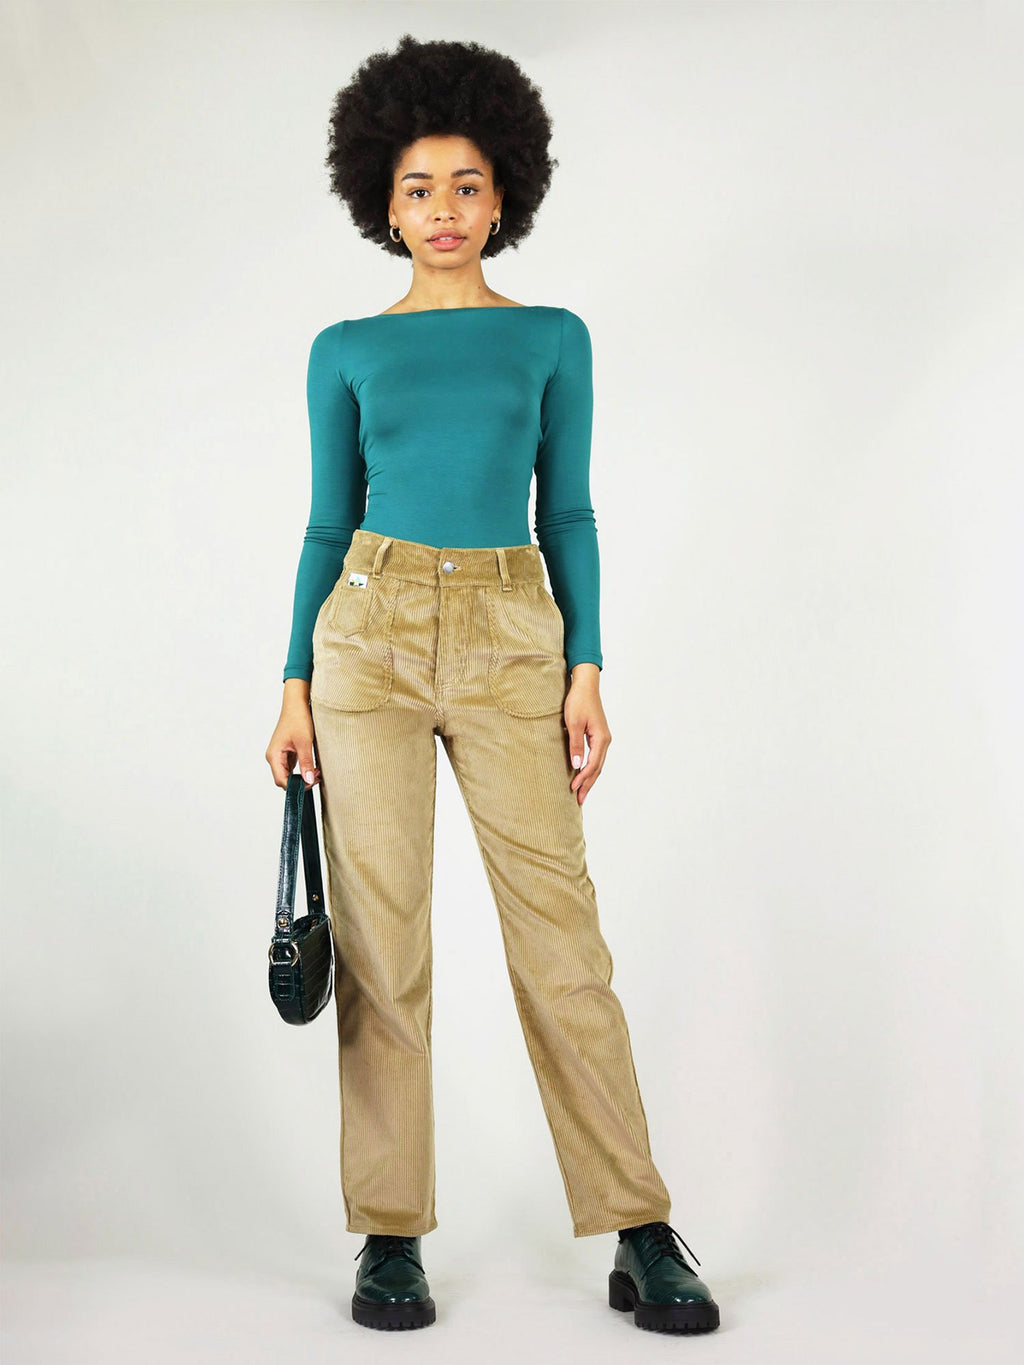 Corduroy trousers in autumn beige. They are high waist, straight leg and button fastening. Large side pockets, woven logo at the front pocket and button loops.